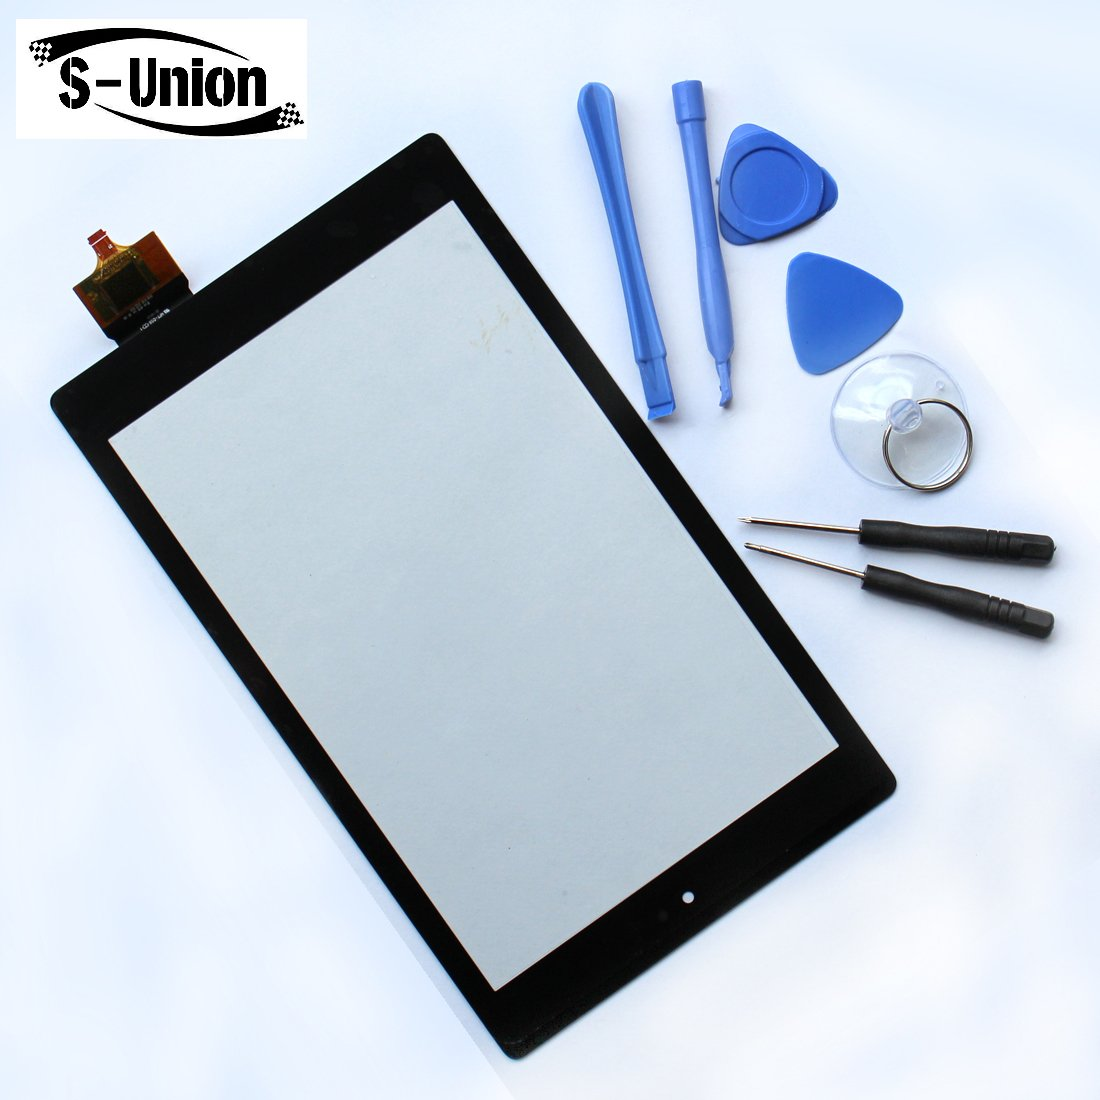 S-Union Touch Panel Digitizer Glass Lens Screen Replacement for Amazon Kindle Fire HD8 6th PR53DC by S-Union